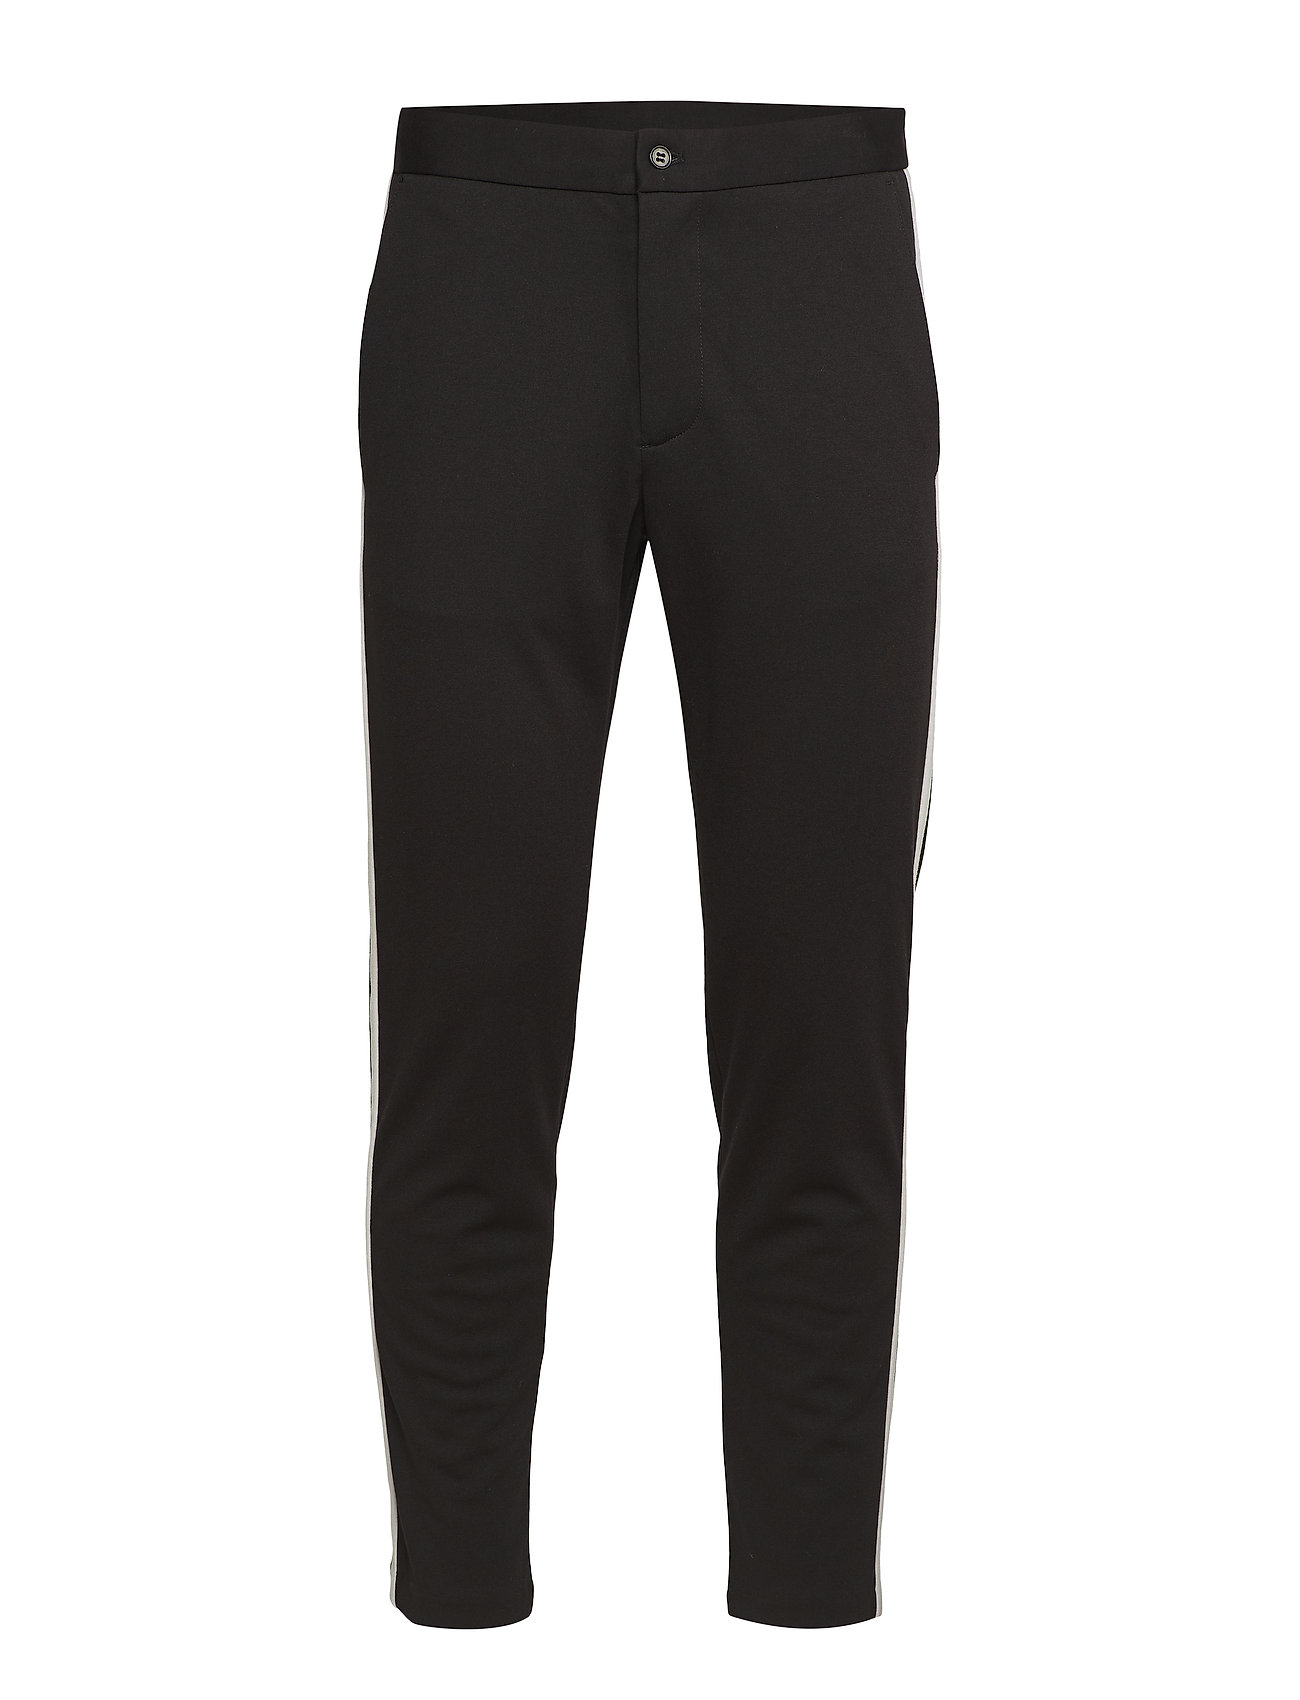 Lindbergh Relaxed pants